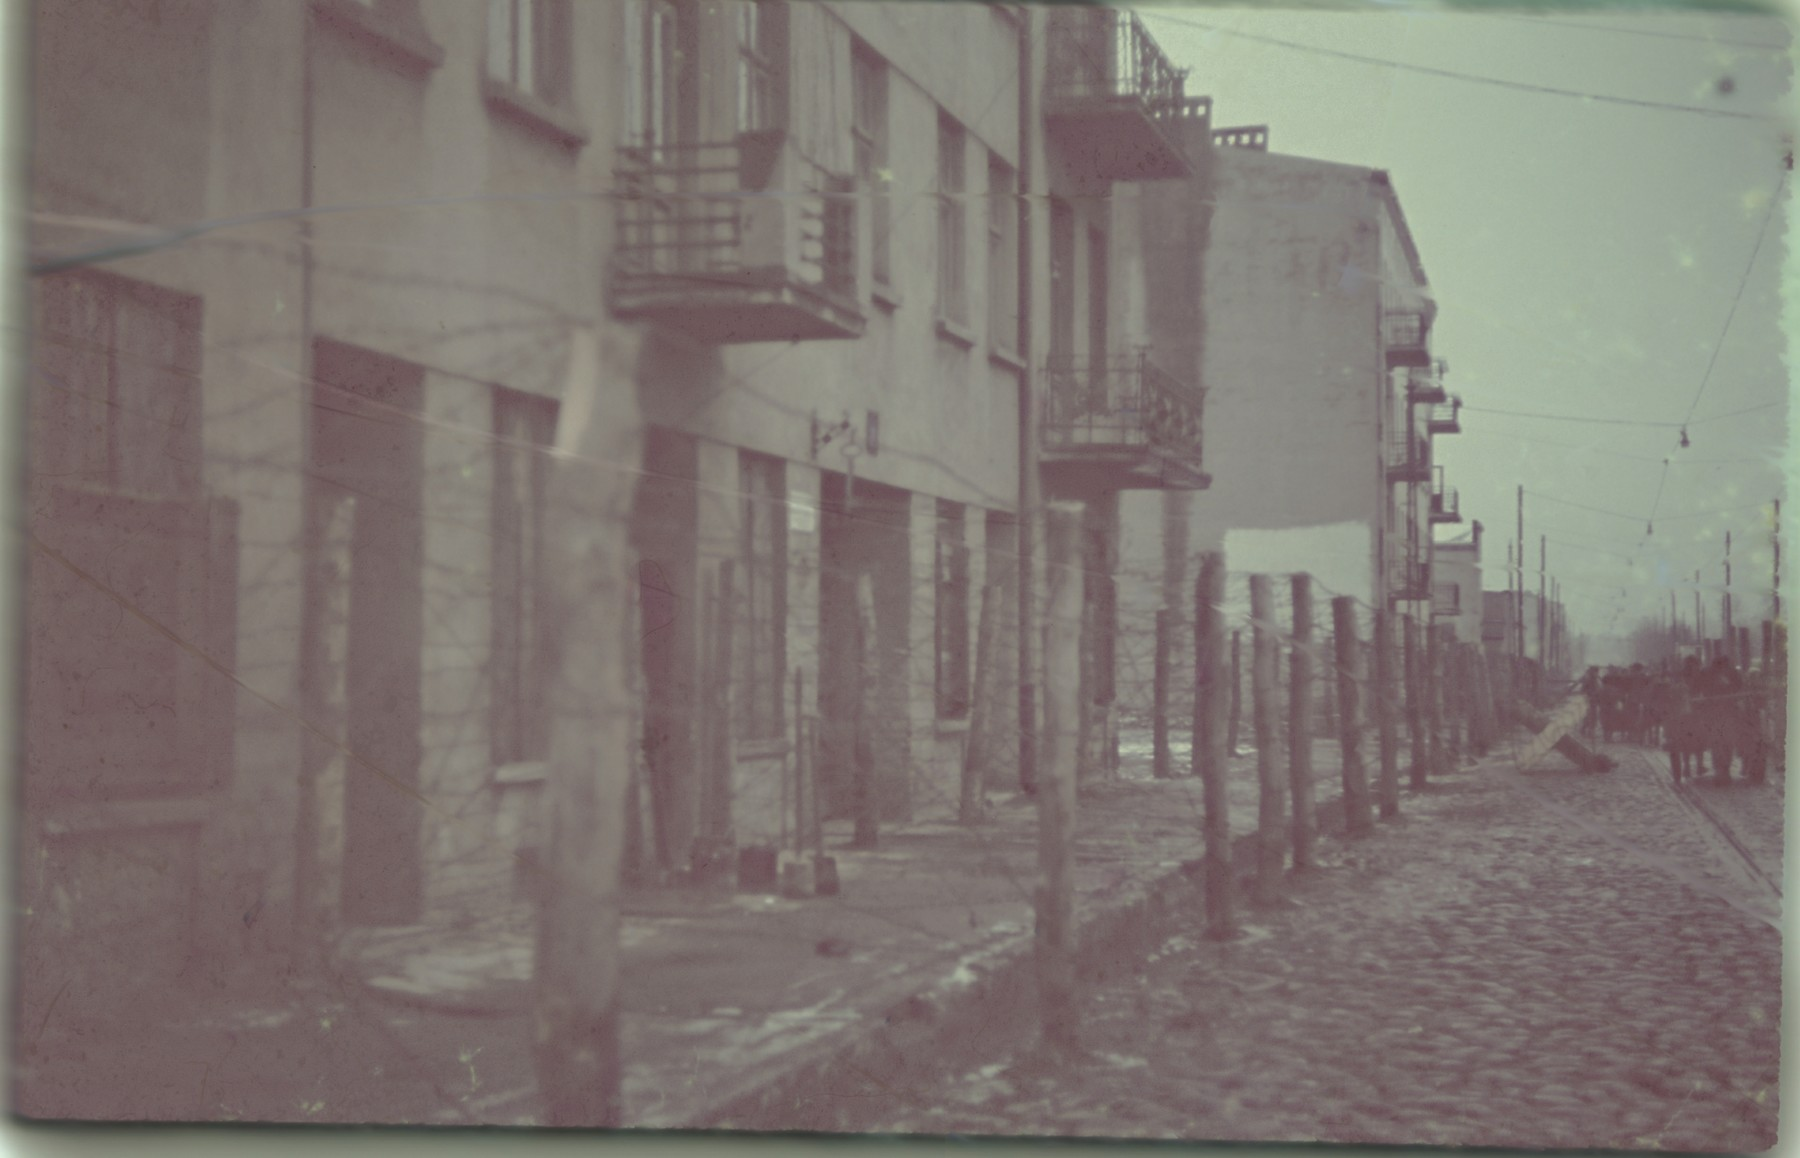 """View of the """"Gypsy camp"""" in Lodz.  The original German caption reads, """"Zigeunerlager"""" (""""Gypsy camp""""), #137."""